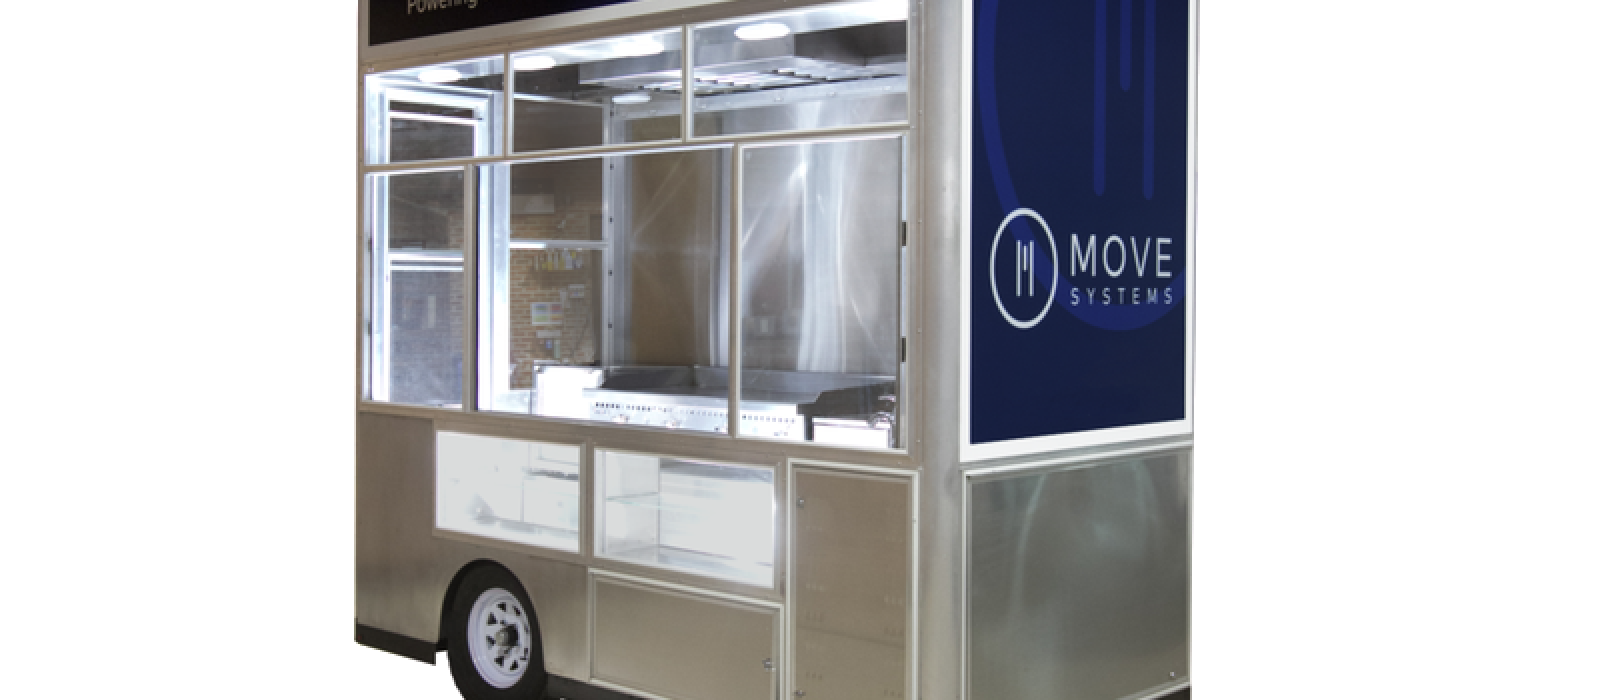 New York City is getting a fleet of eco-friendly food carts